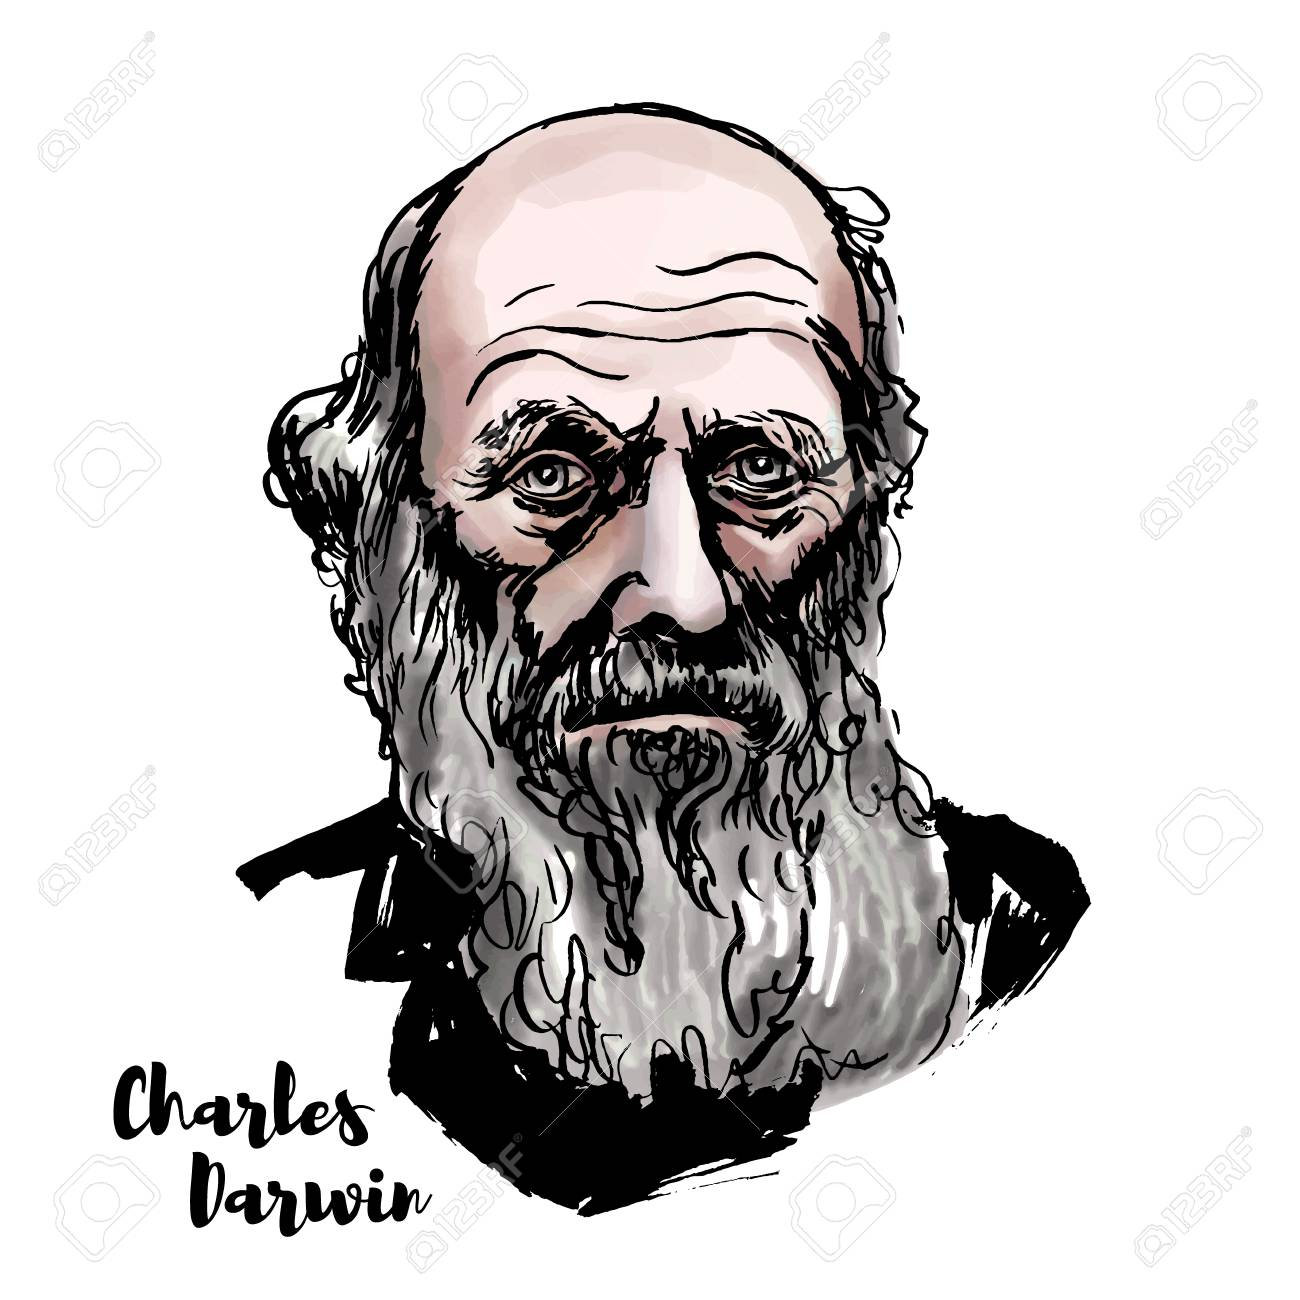 Charles Darwin watercolor vector portrait with ink contours. English naturalist, geologist and biologist, best known for his contributions to the science of evolution. - 110435008